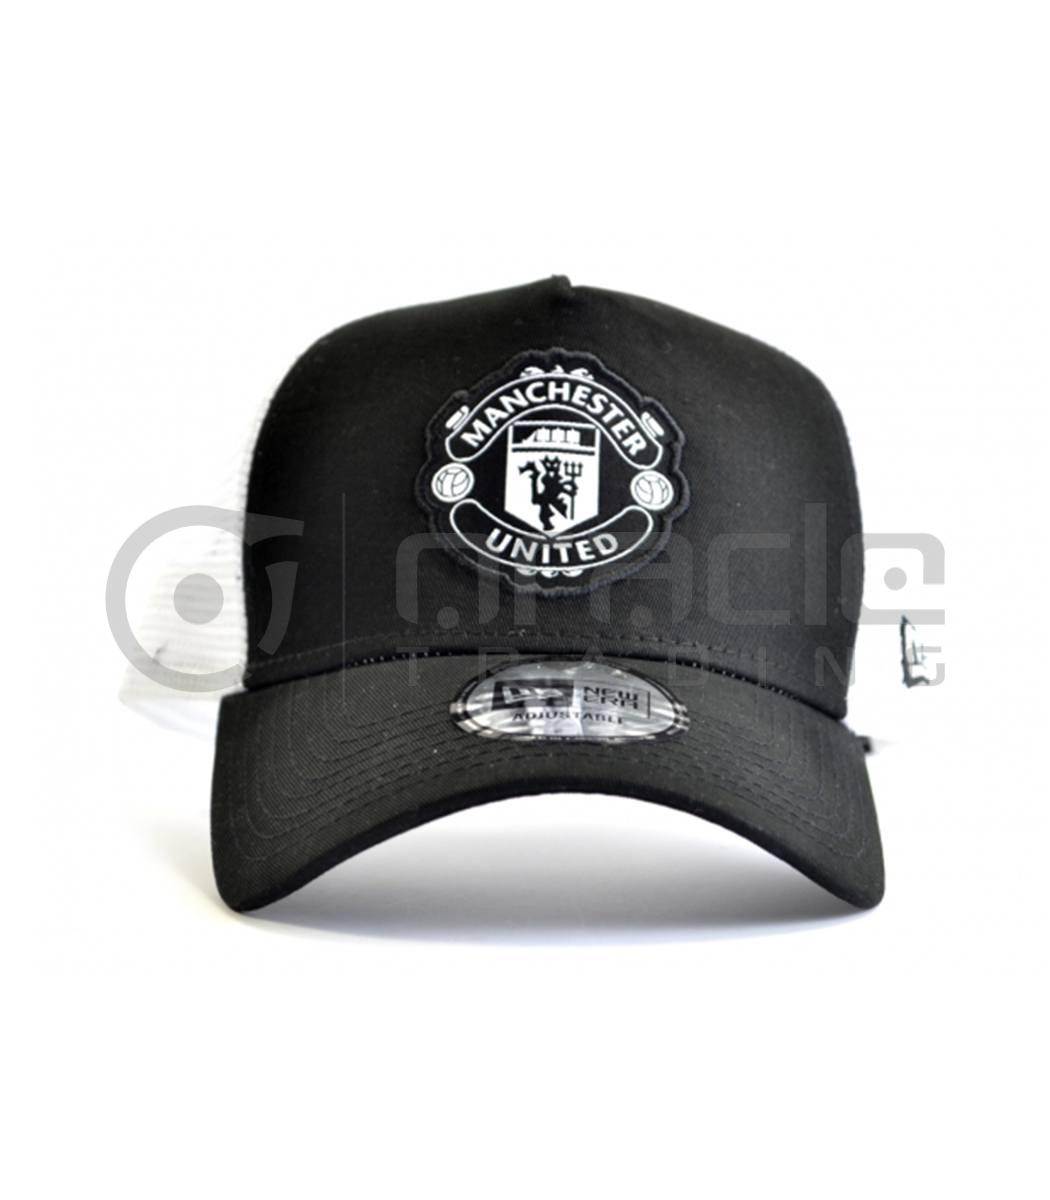 manchester united black white crest hat new era oracle trading inc manchester united black white crest